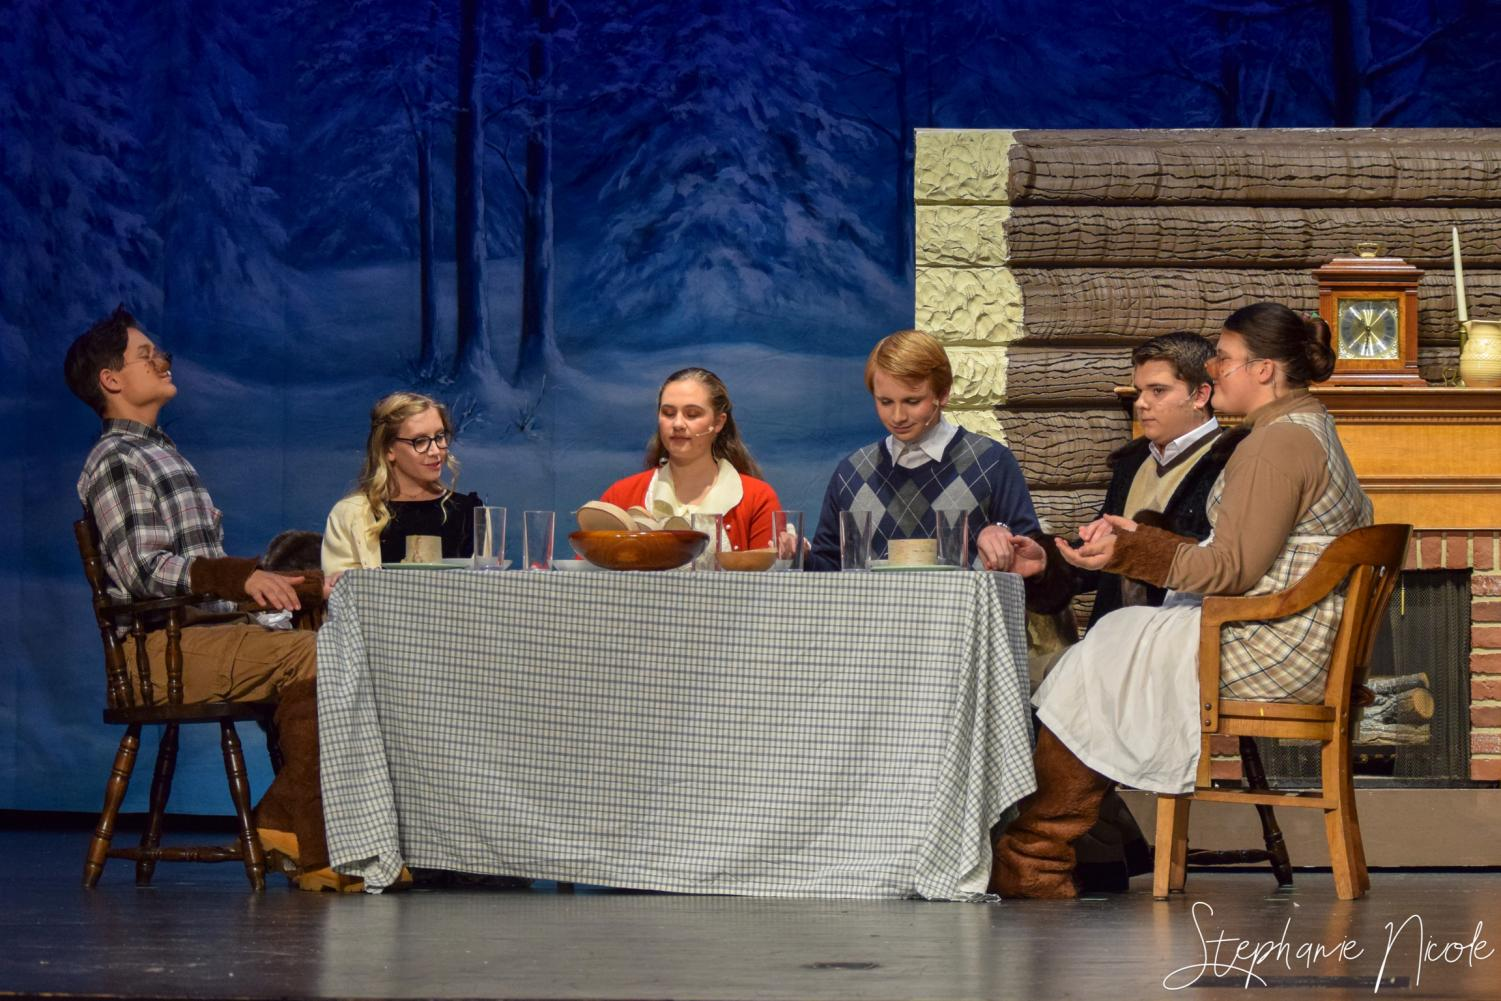 Junior Harry Pala, senior Emma Loomis, juniors Jackie Bobos and Tyler Smith, sophomore Kyle Rassel, and freshman Genesis Sandoval sit during a scene at the Beaver house.